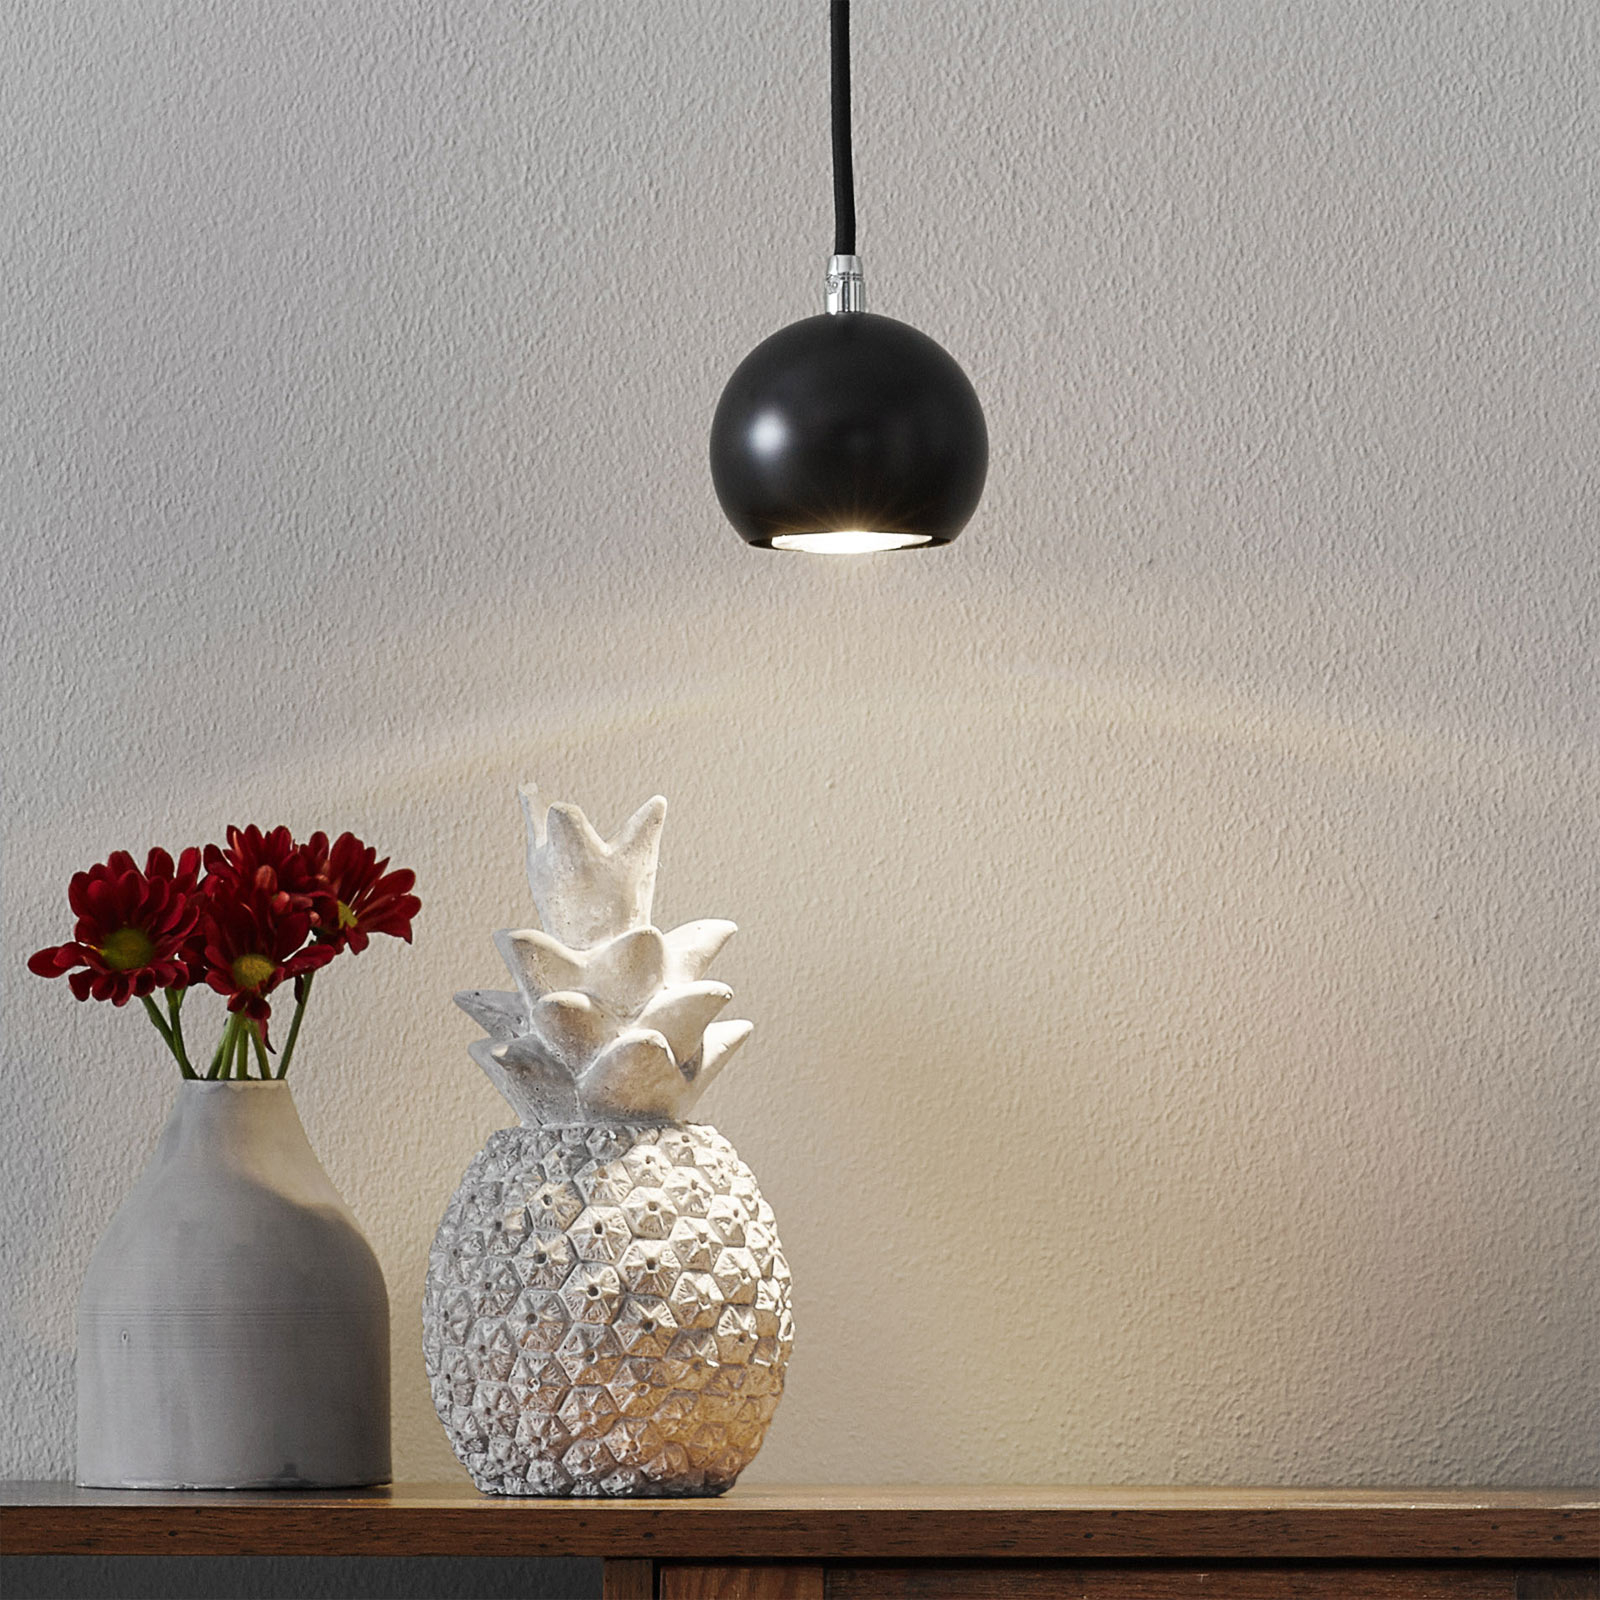 SLV Light Eye Ball hanglamp zwart / chroom